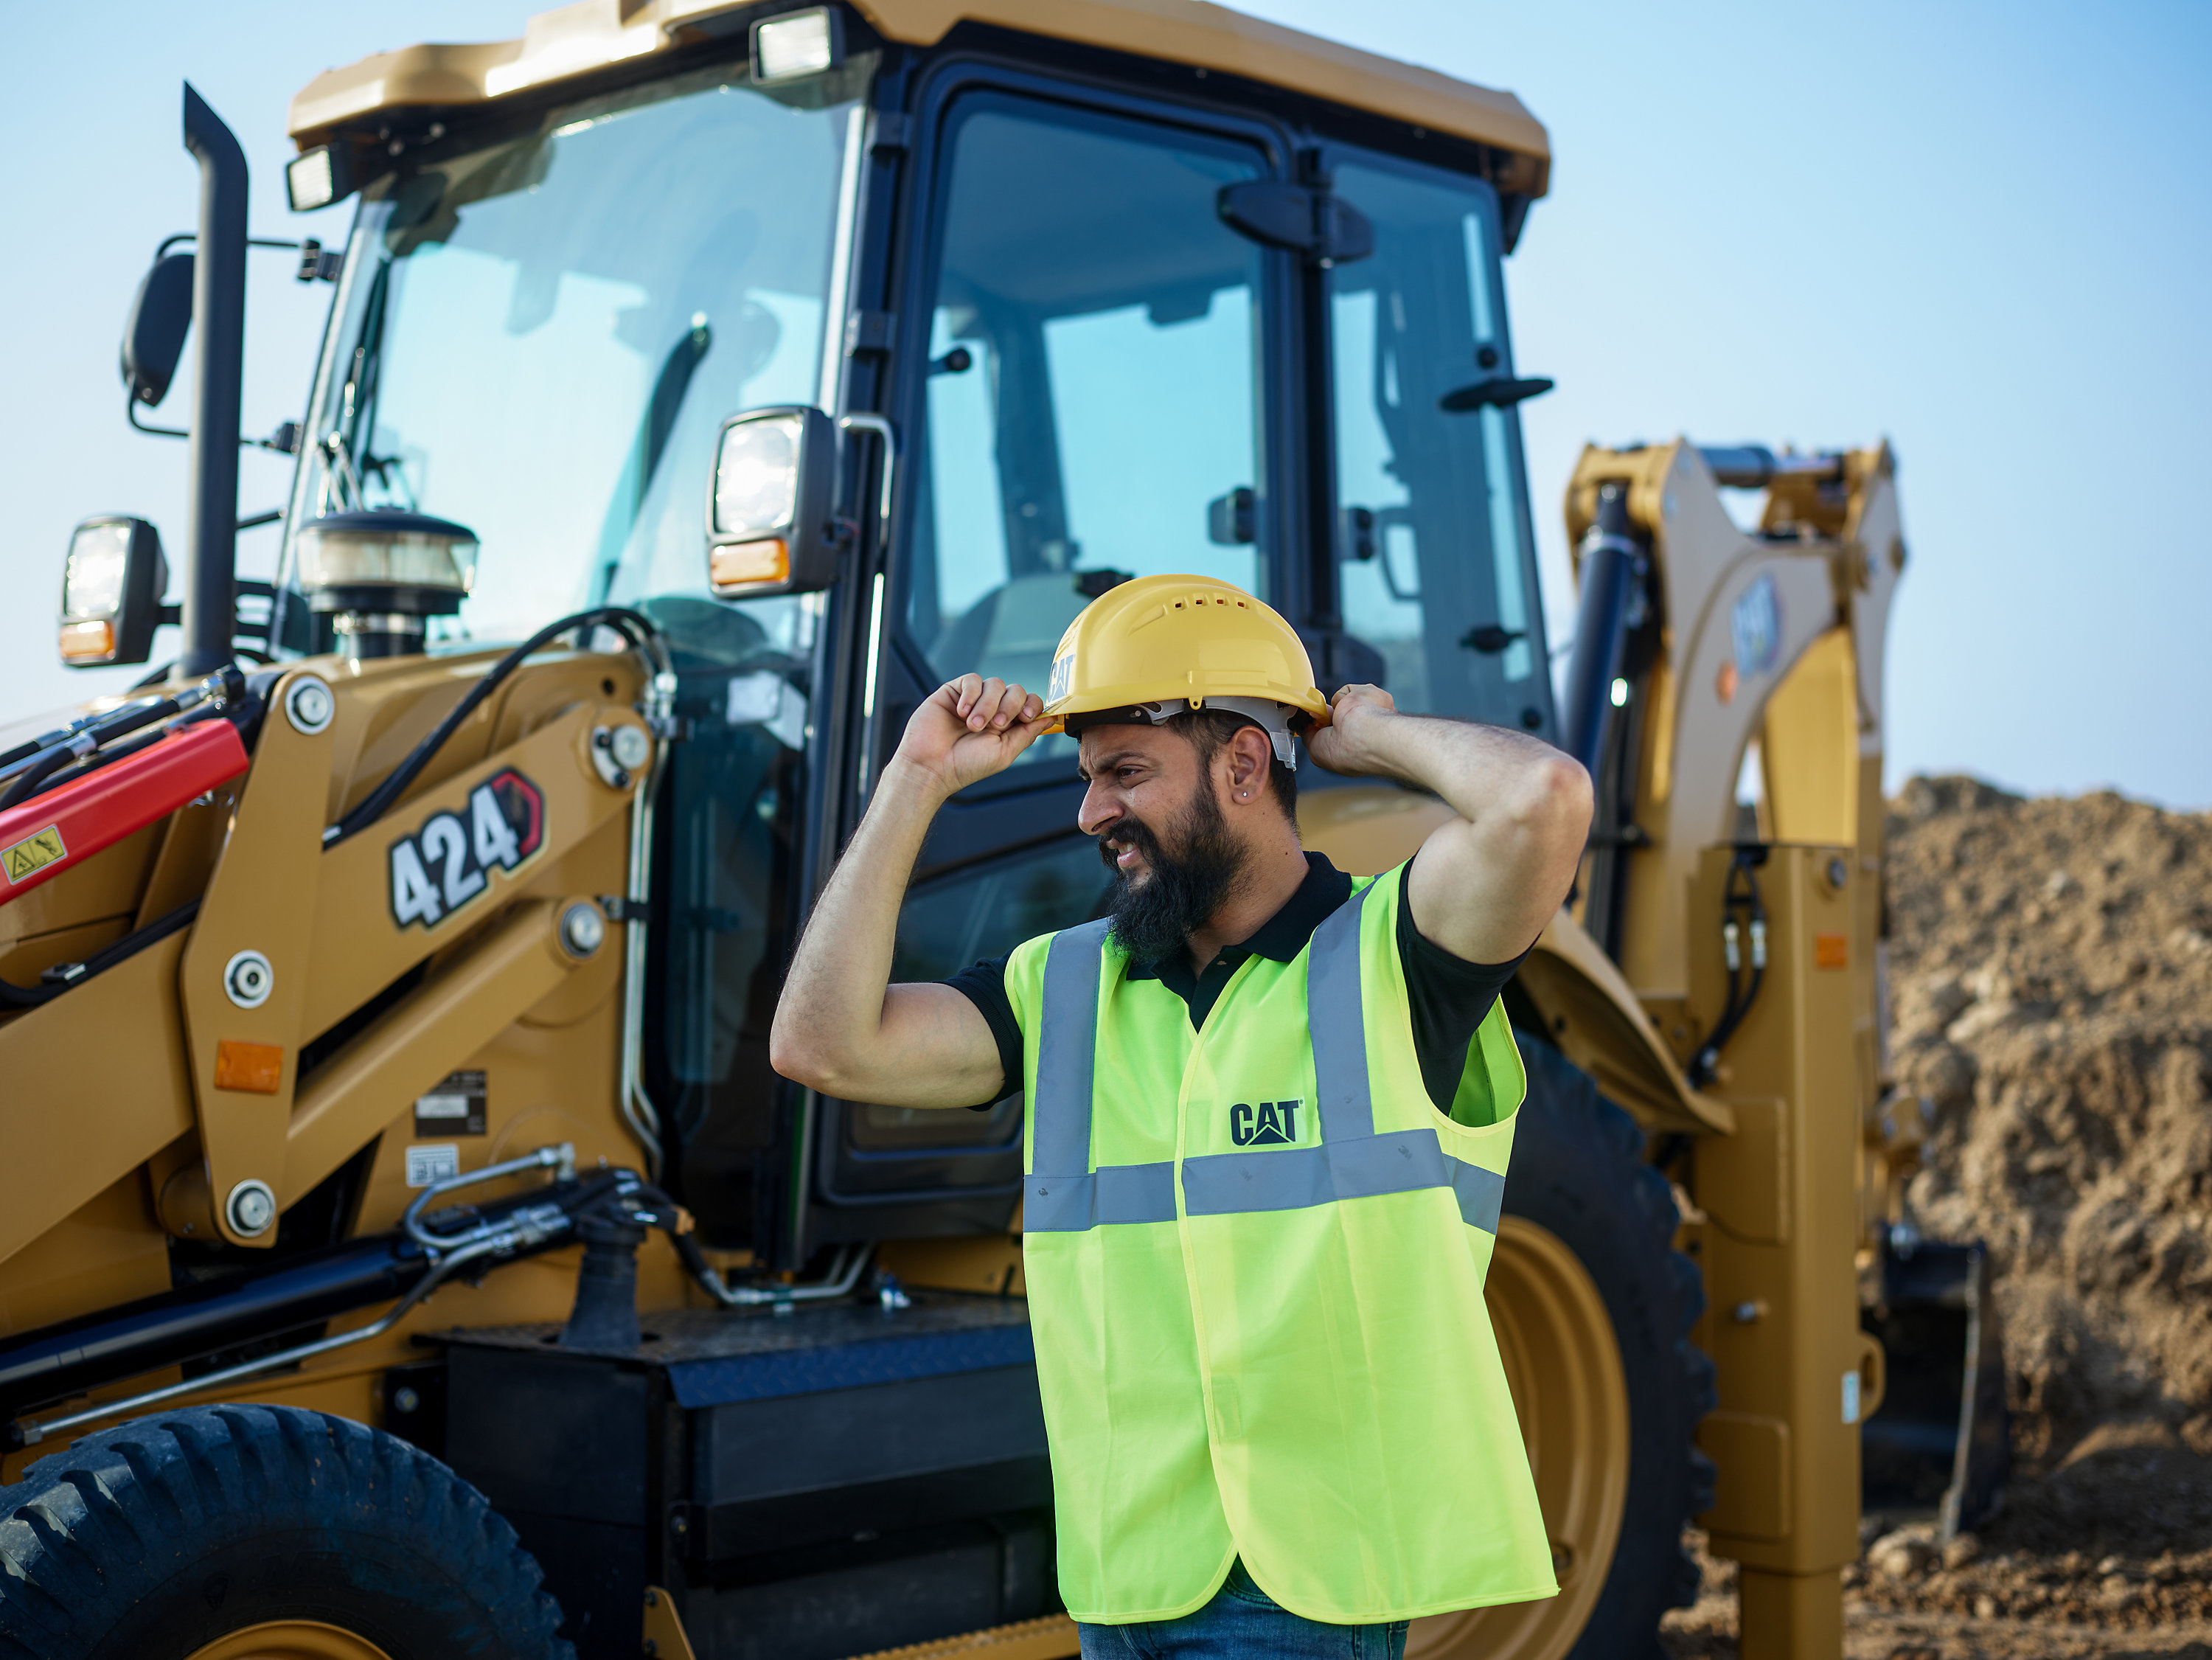 construction worker in a Cat hardhat on a jobsite